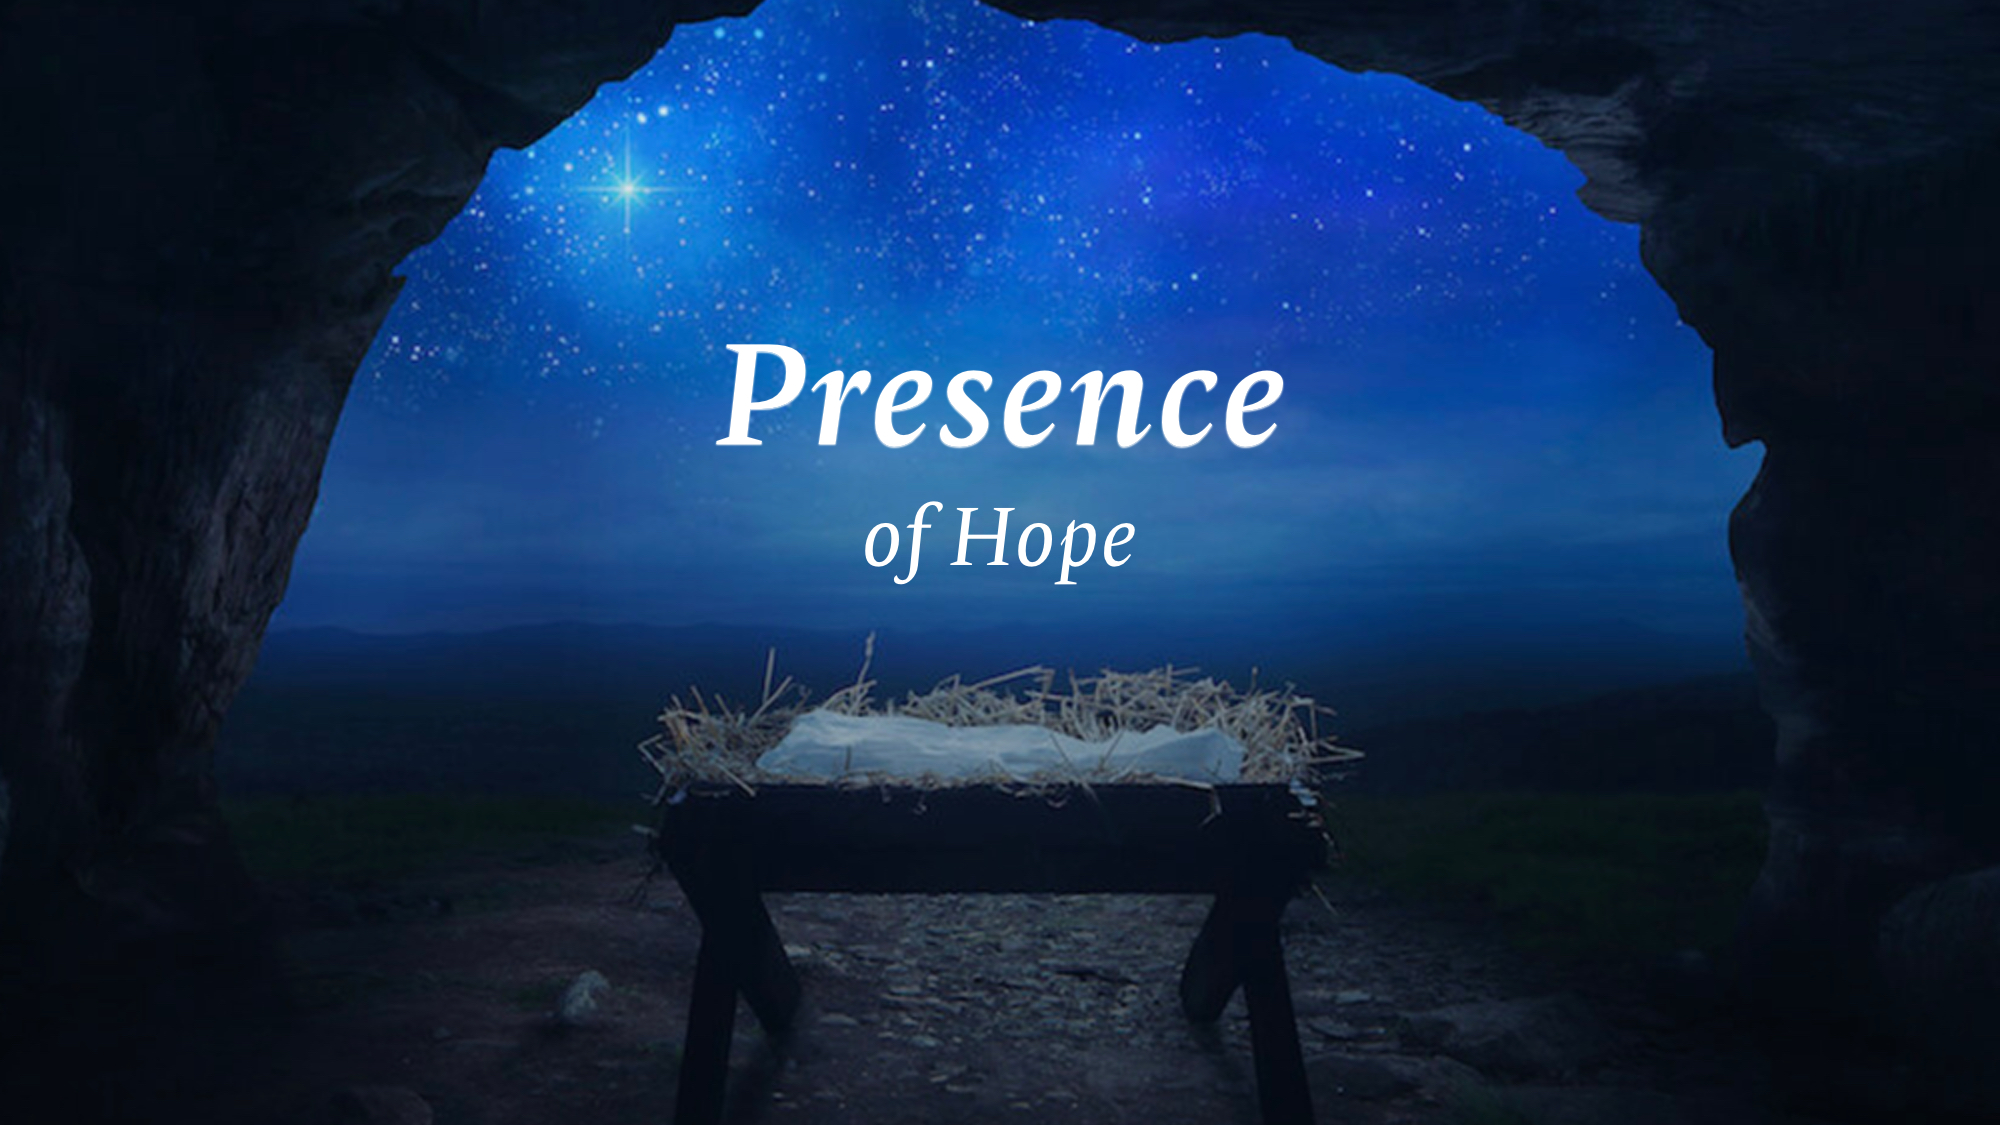 The Presence of Hope